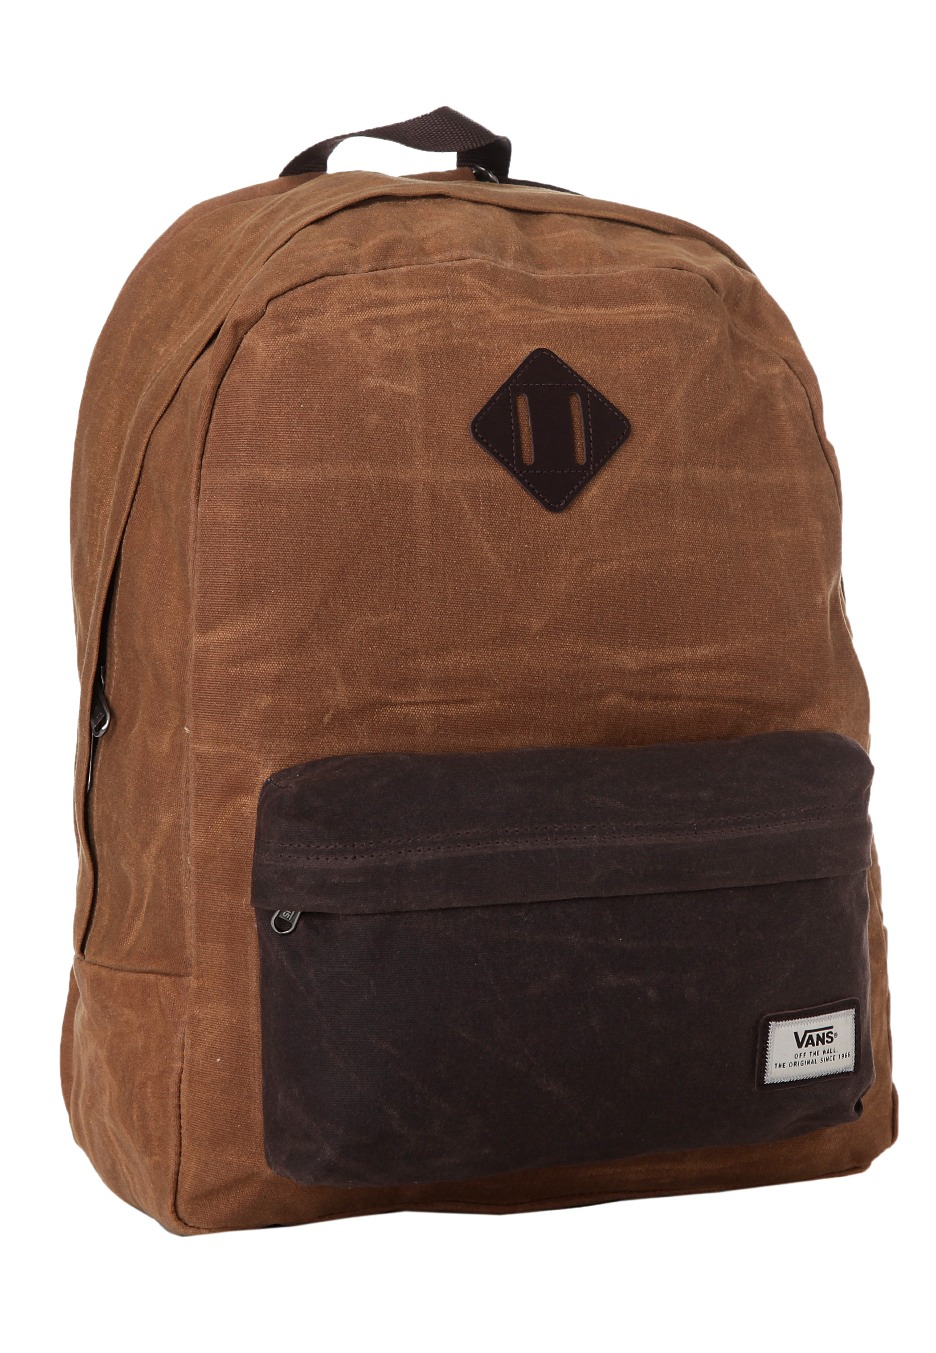 93757d26d Vans - Old Skool Plus Waxed - Backpack - Impericon.com Worldwide